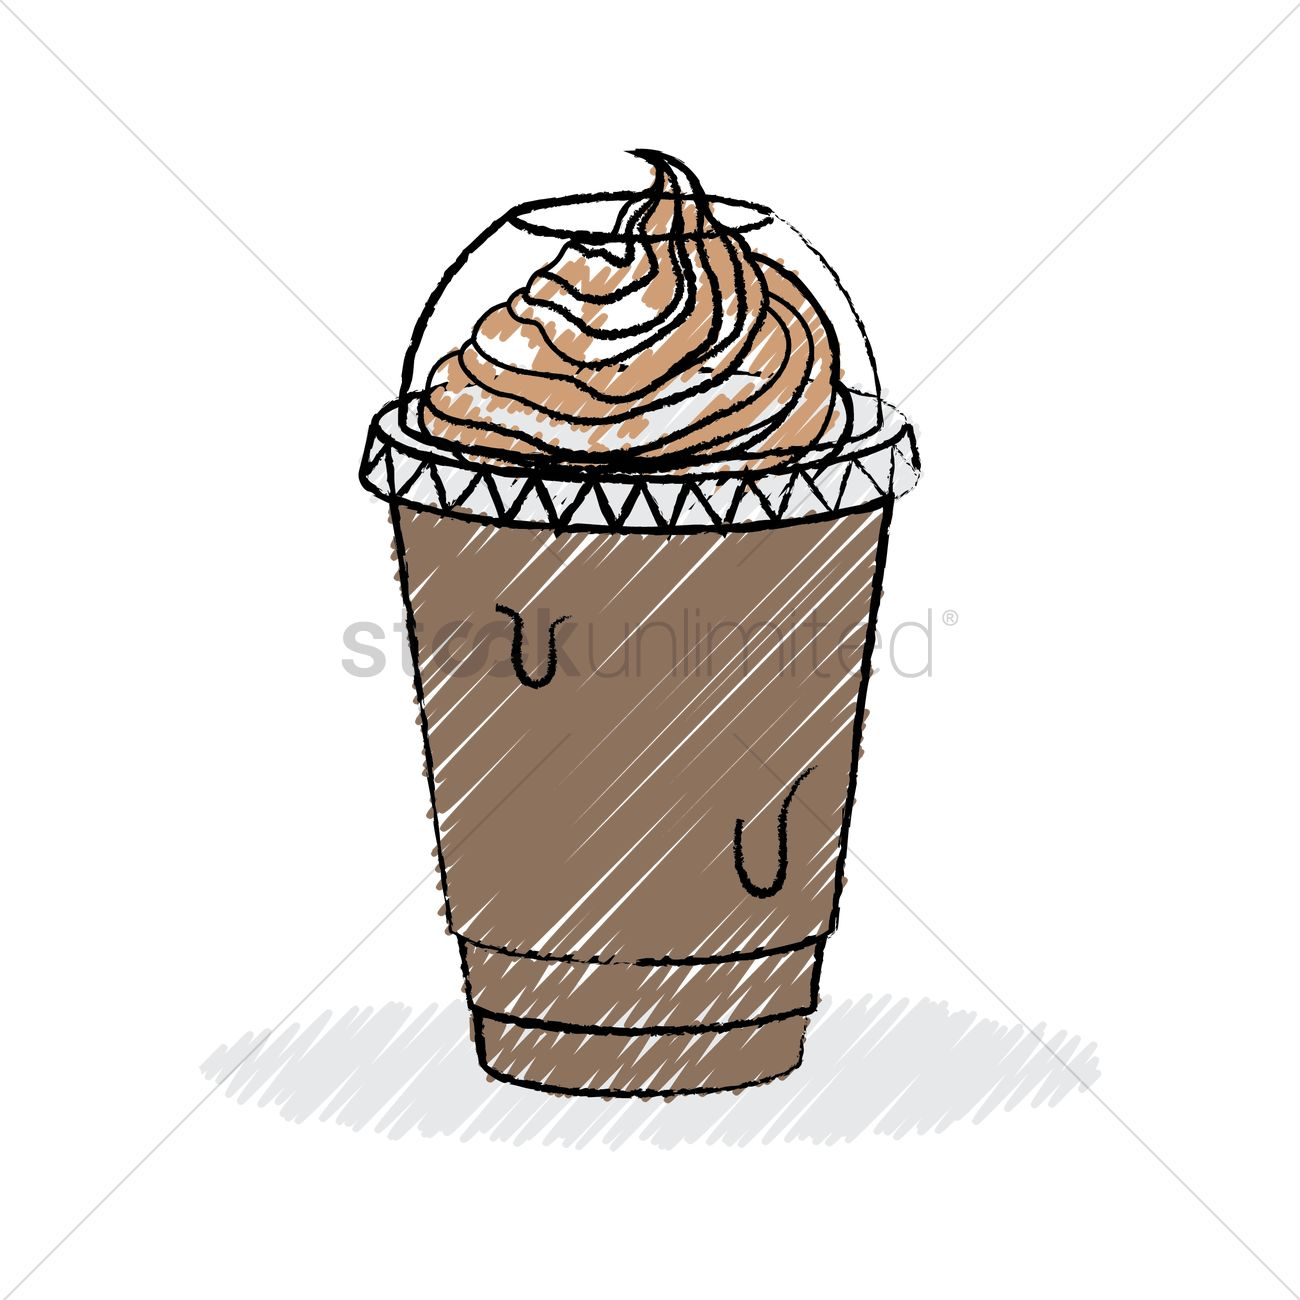 Ice blended coffee with cream Vector Image - 1450520 ...